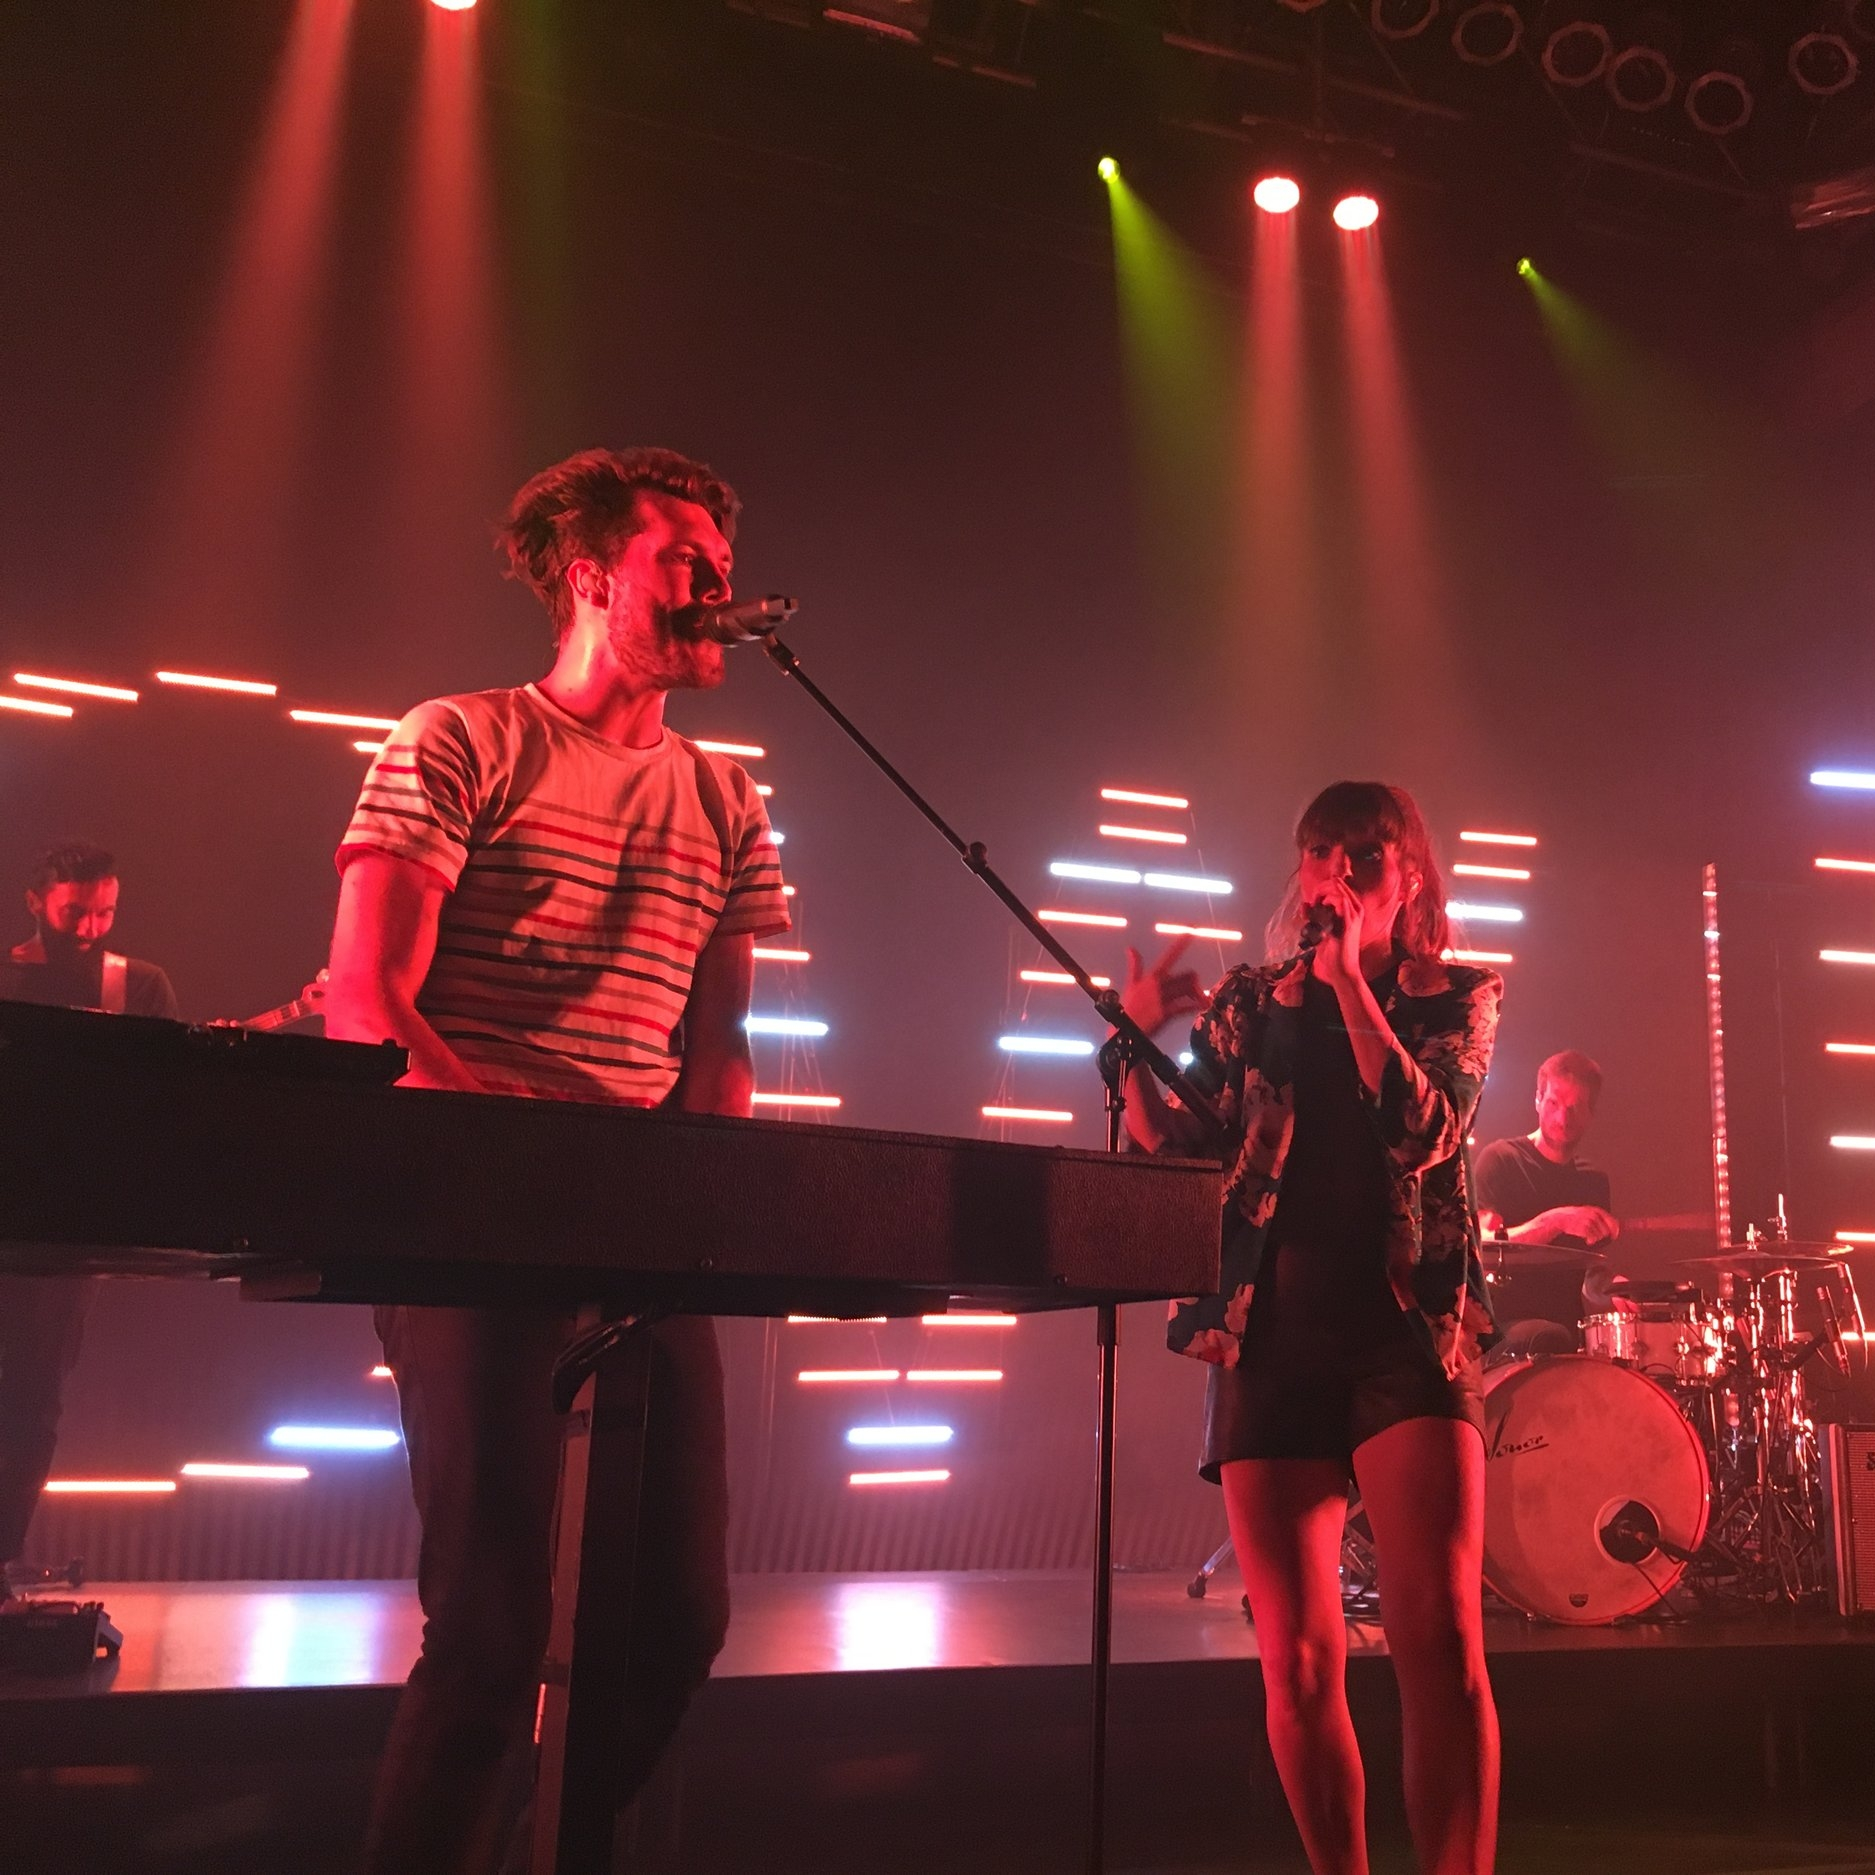 Concert Review: Oh Wonder - London-based duo